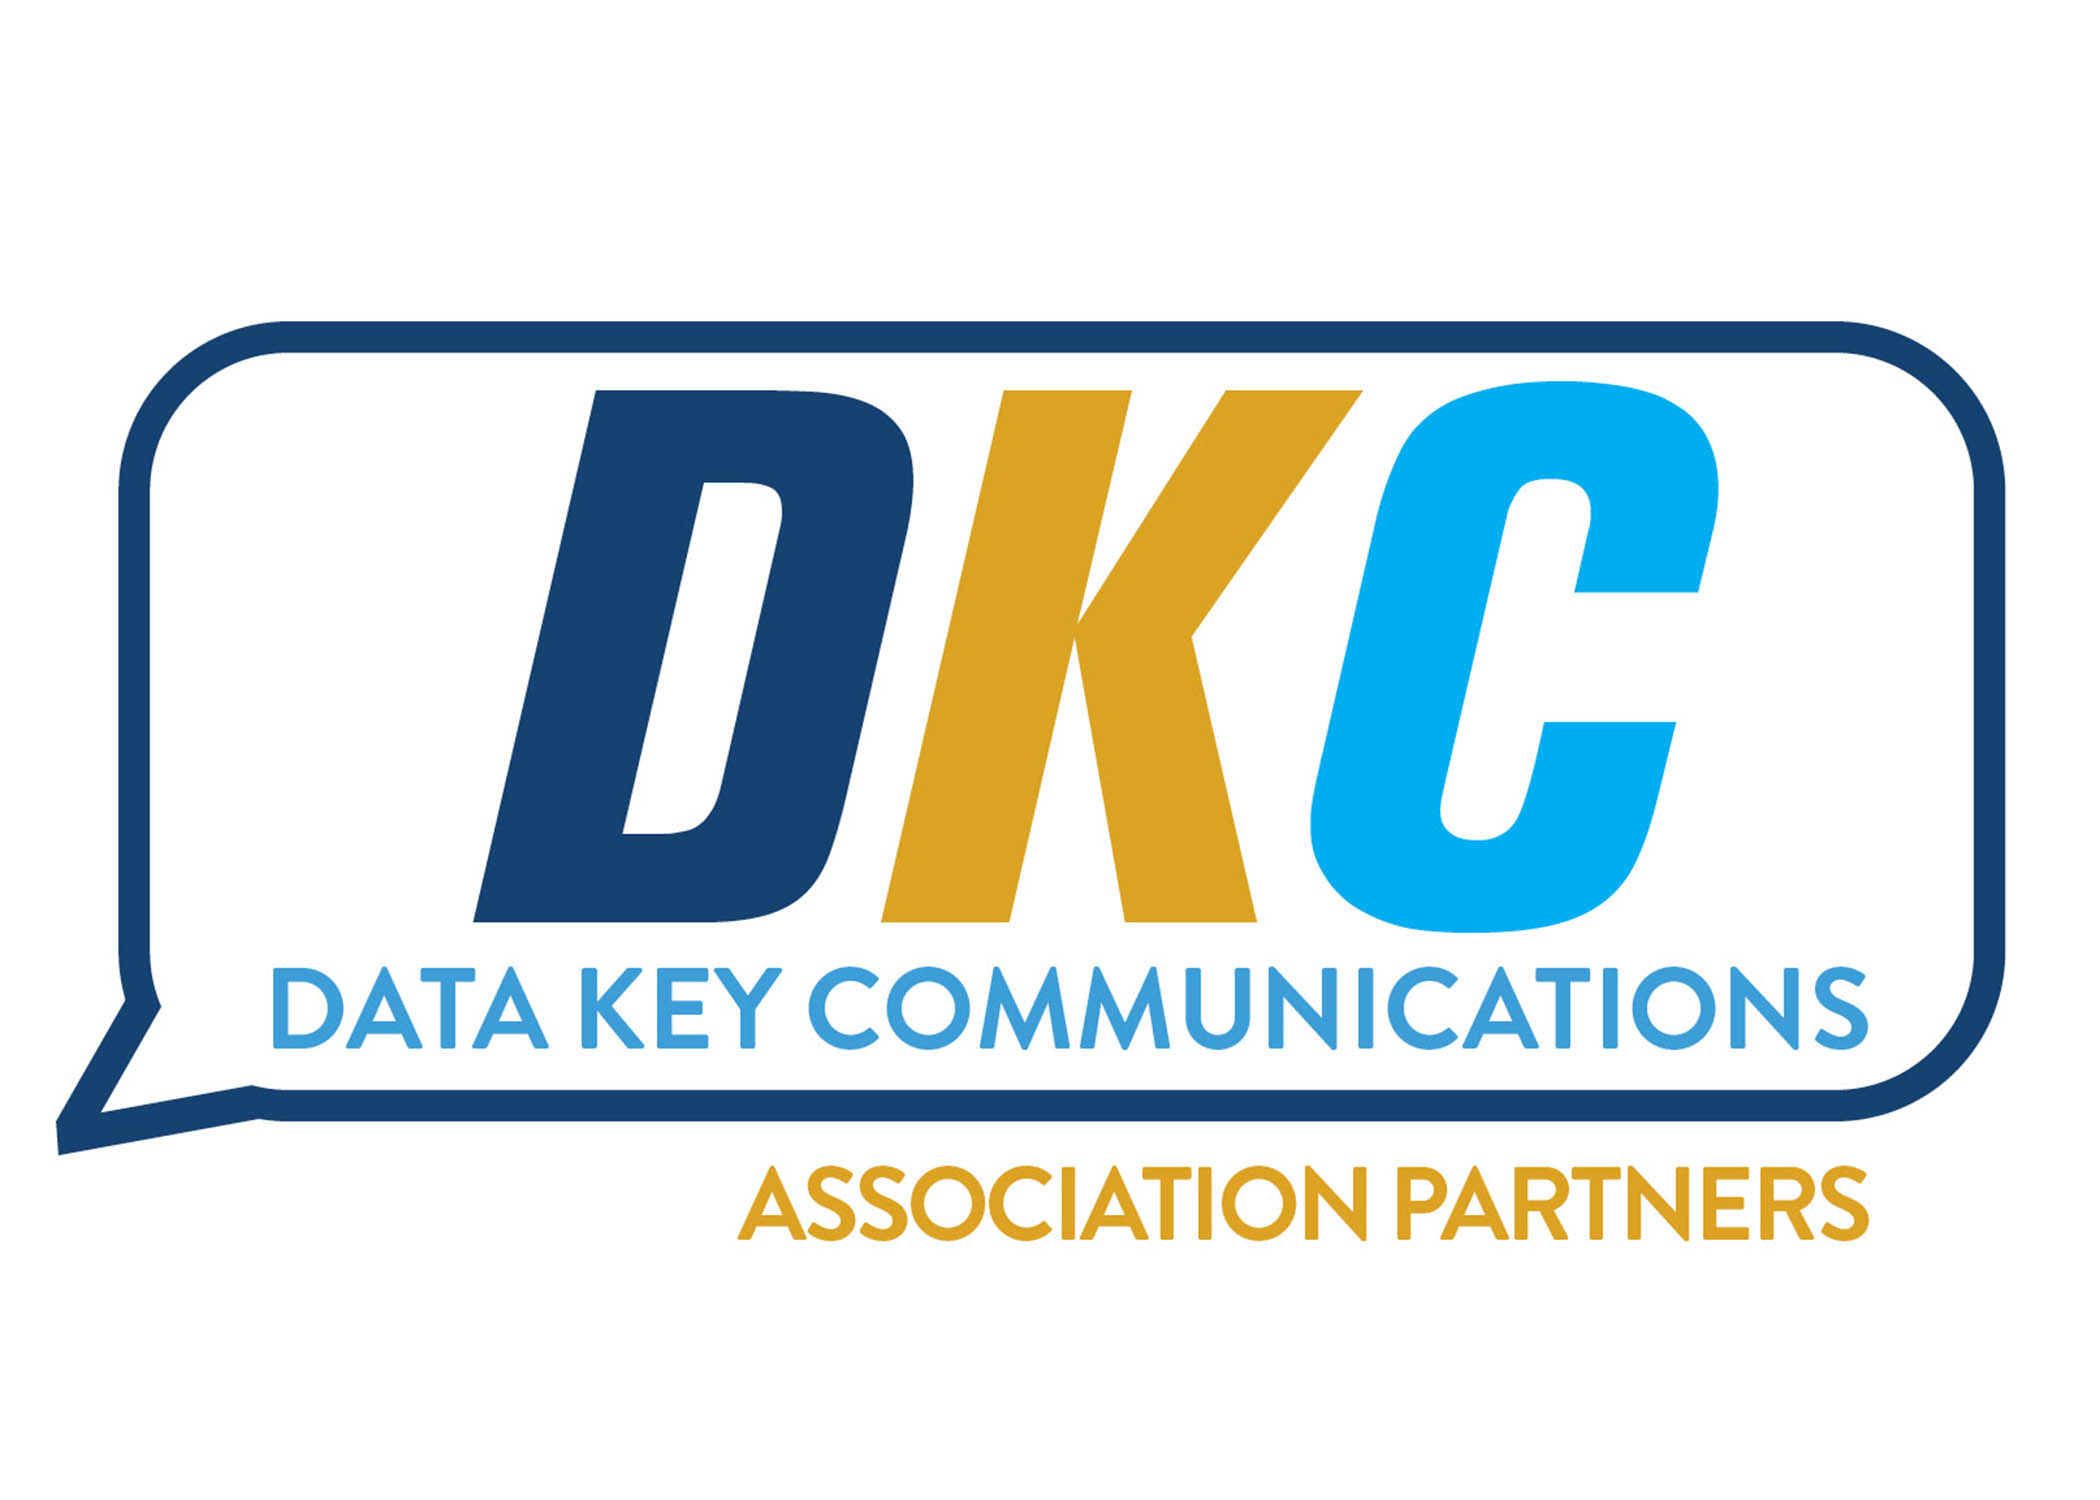 Data Key Communications